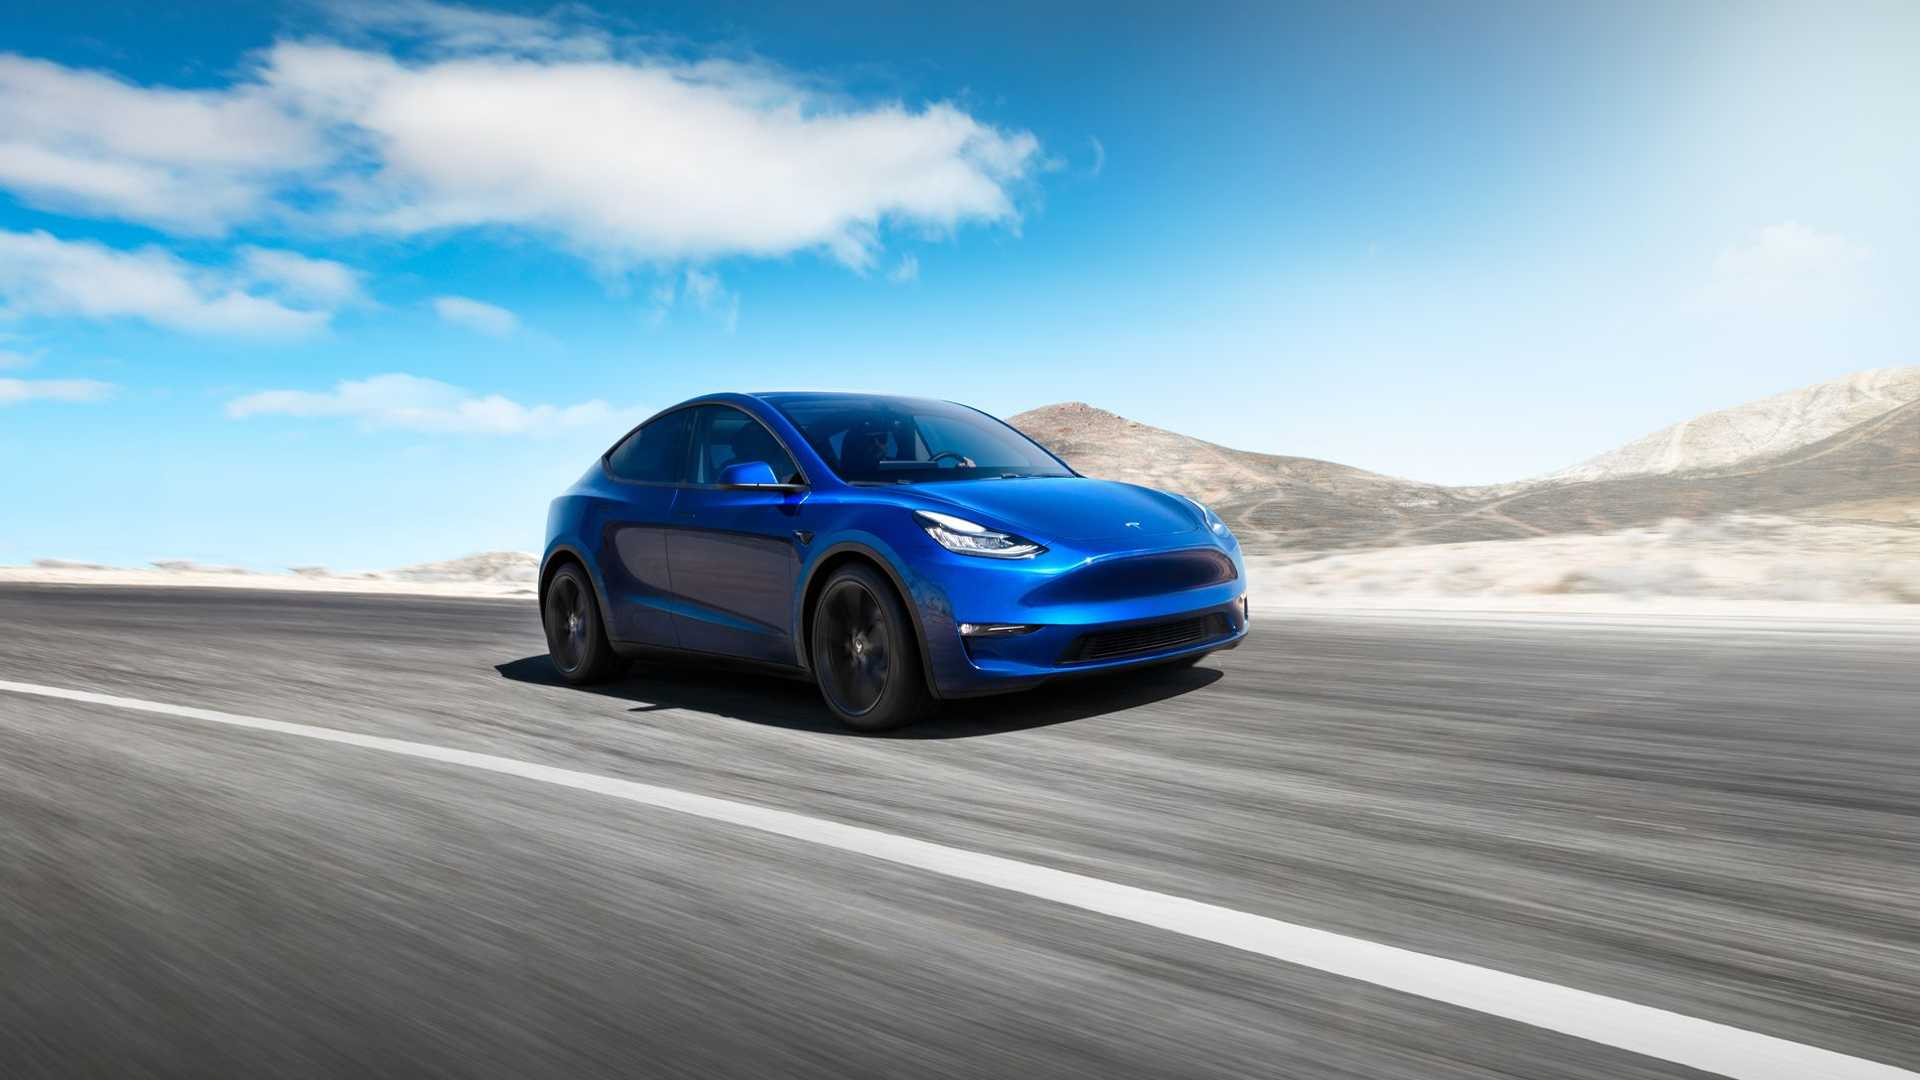 California: Tesla New Car Registrations In Q2 2020 Down 48%